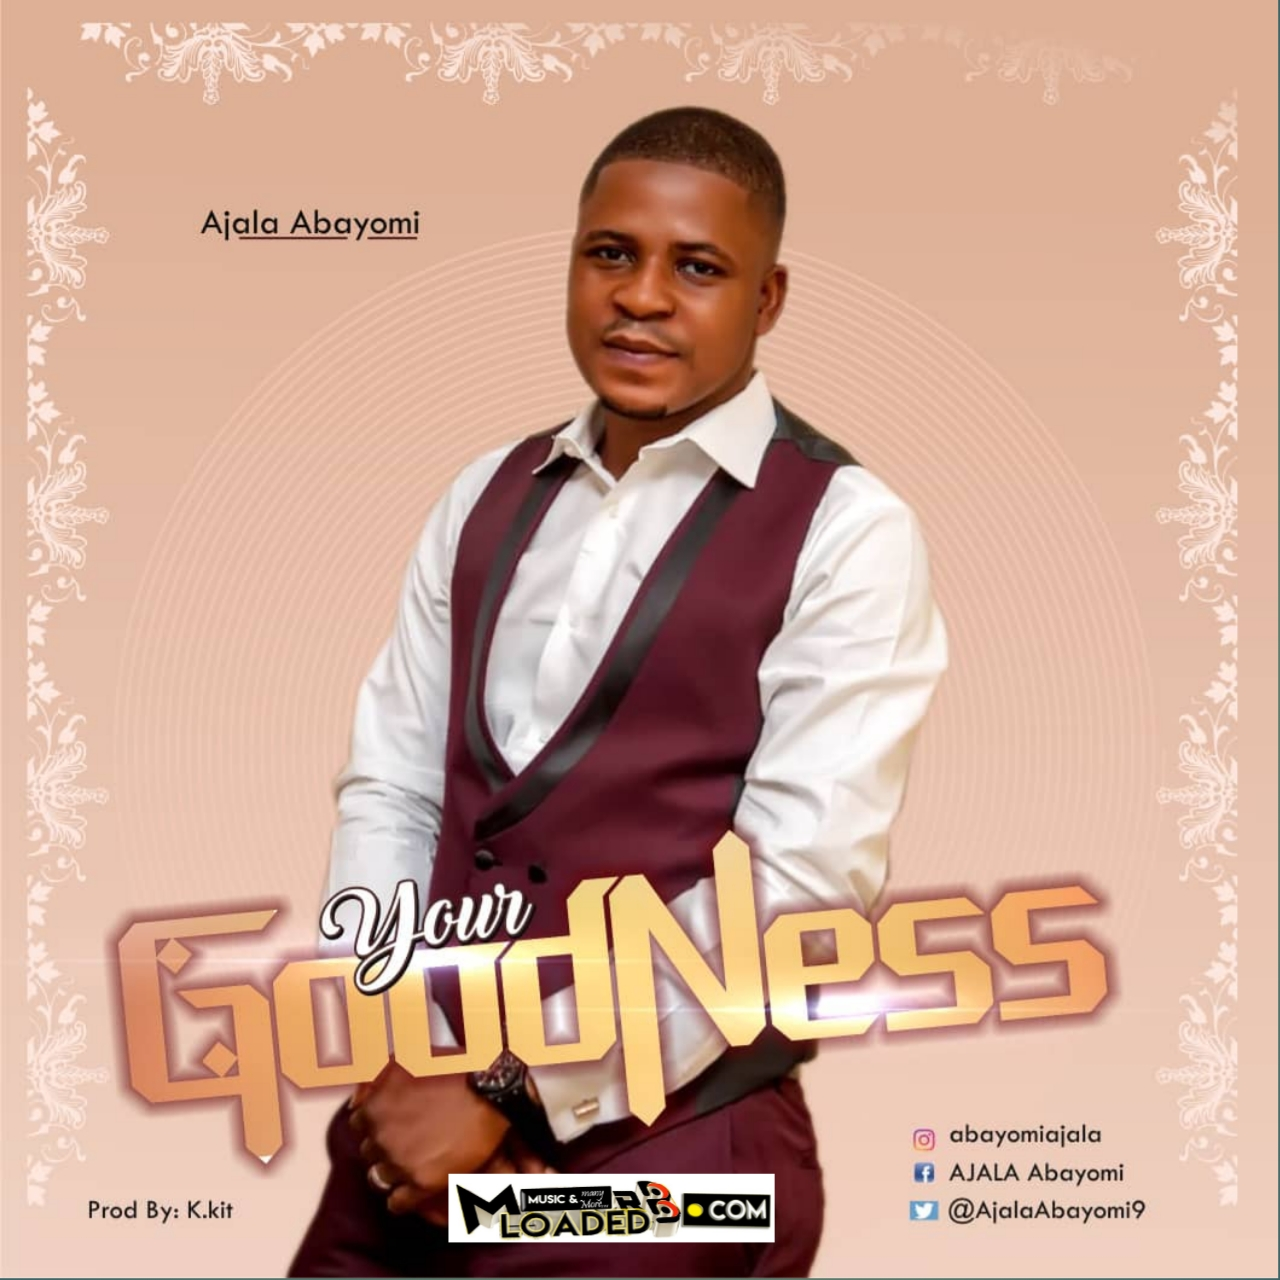 Ajala Abayomi – Your Goodness >> Mrbloaded | Download Mp3